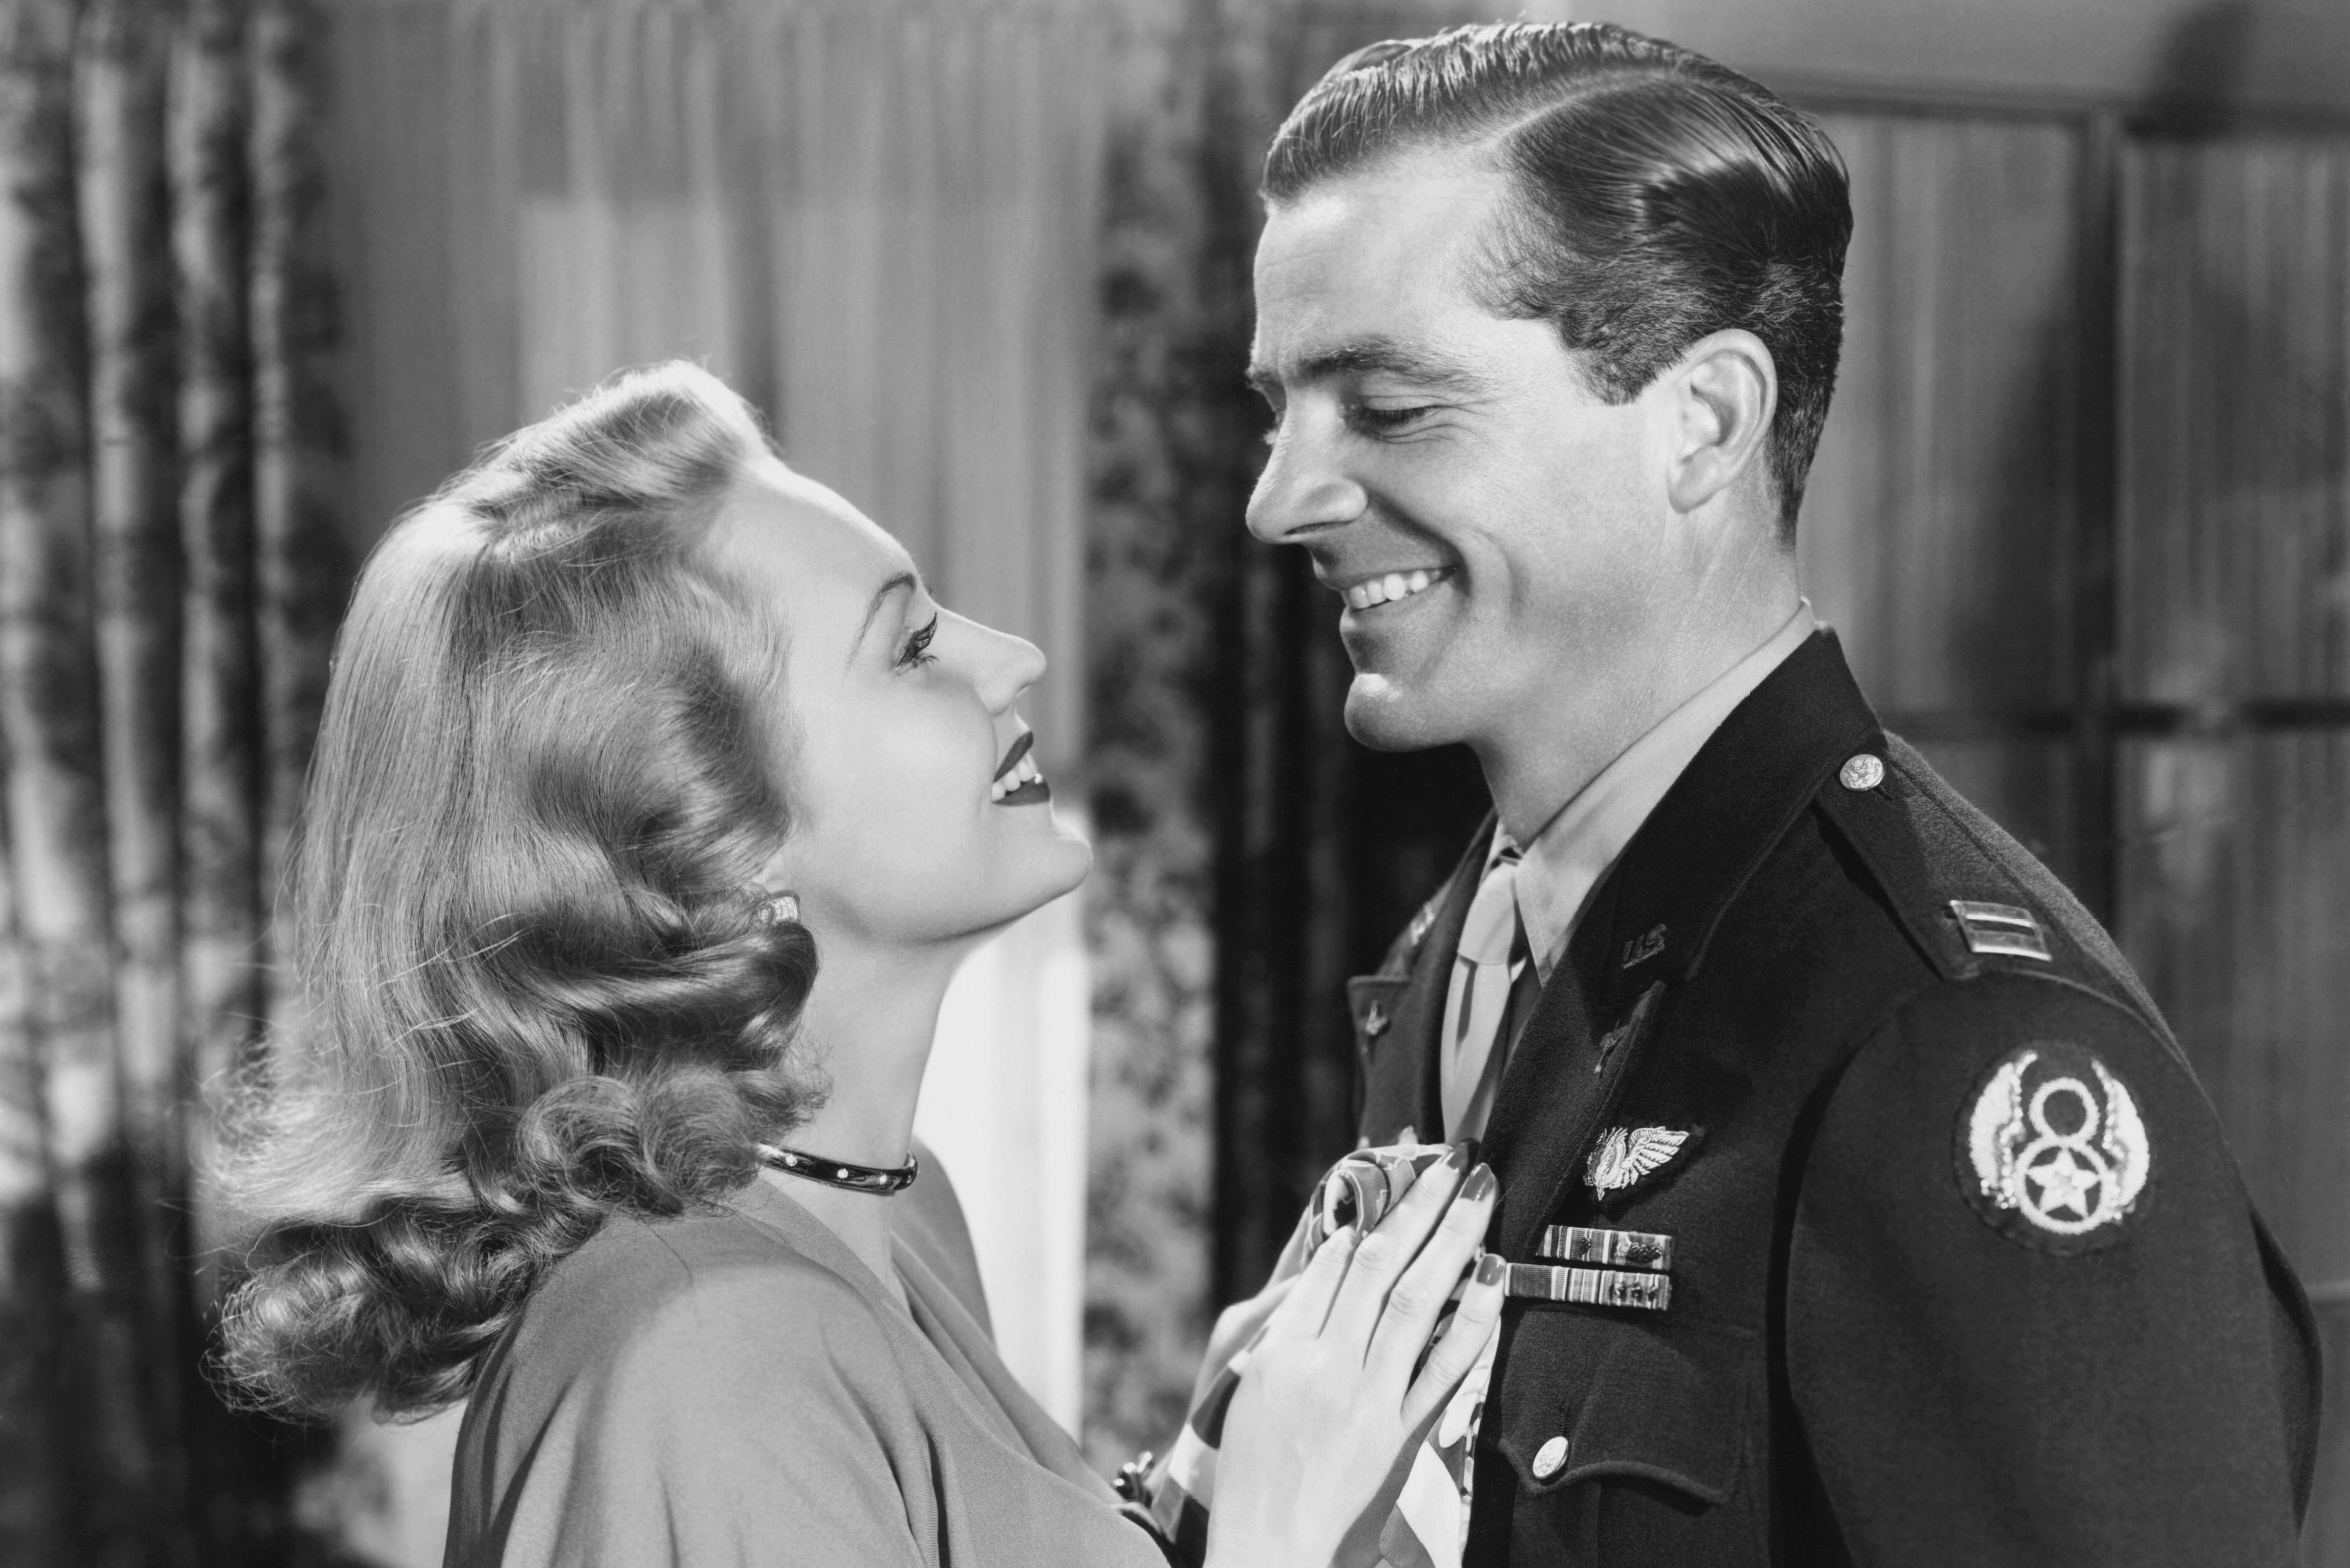 Watch Now William Wyler's World War II film has become the gold standard for films about soldiers who return home from the front and find reintegrating into life isn't all that easy. The film even co-stars real war vet Harold Russell, who lost his hands, and won an Honorary Oscar for his performance.